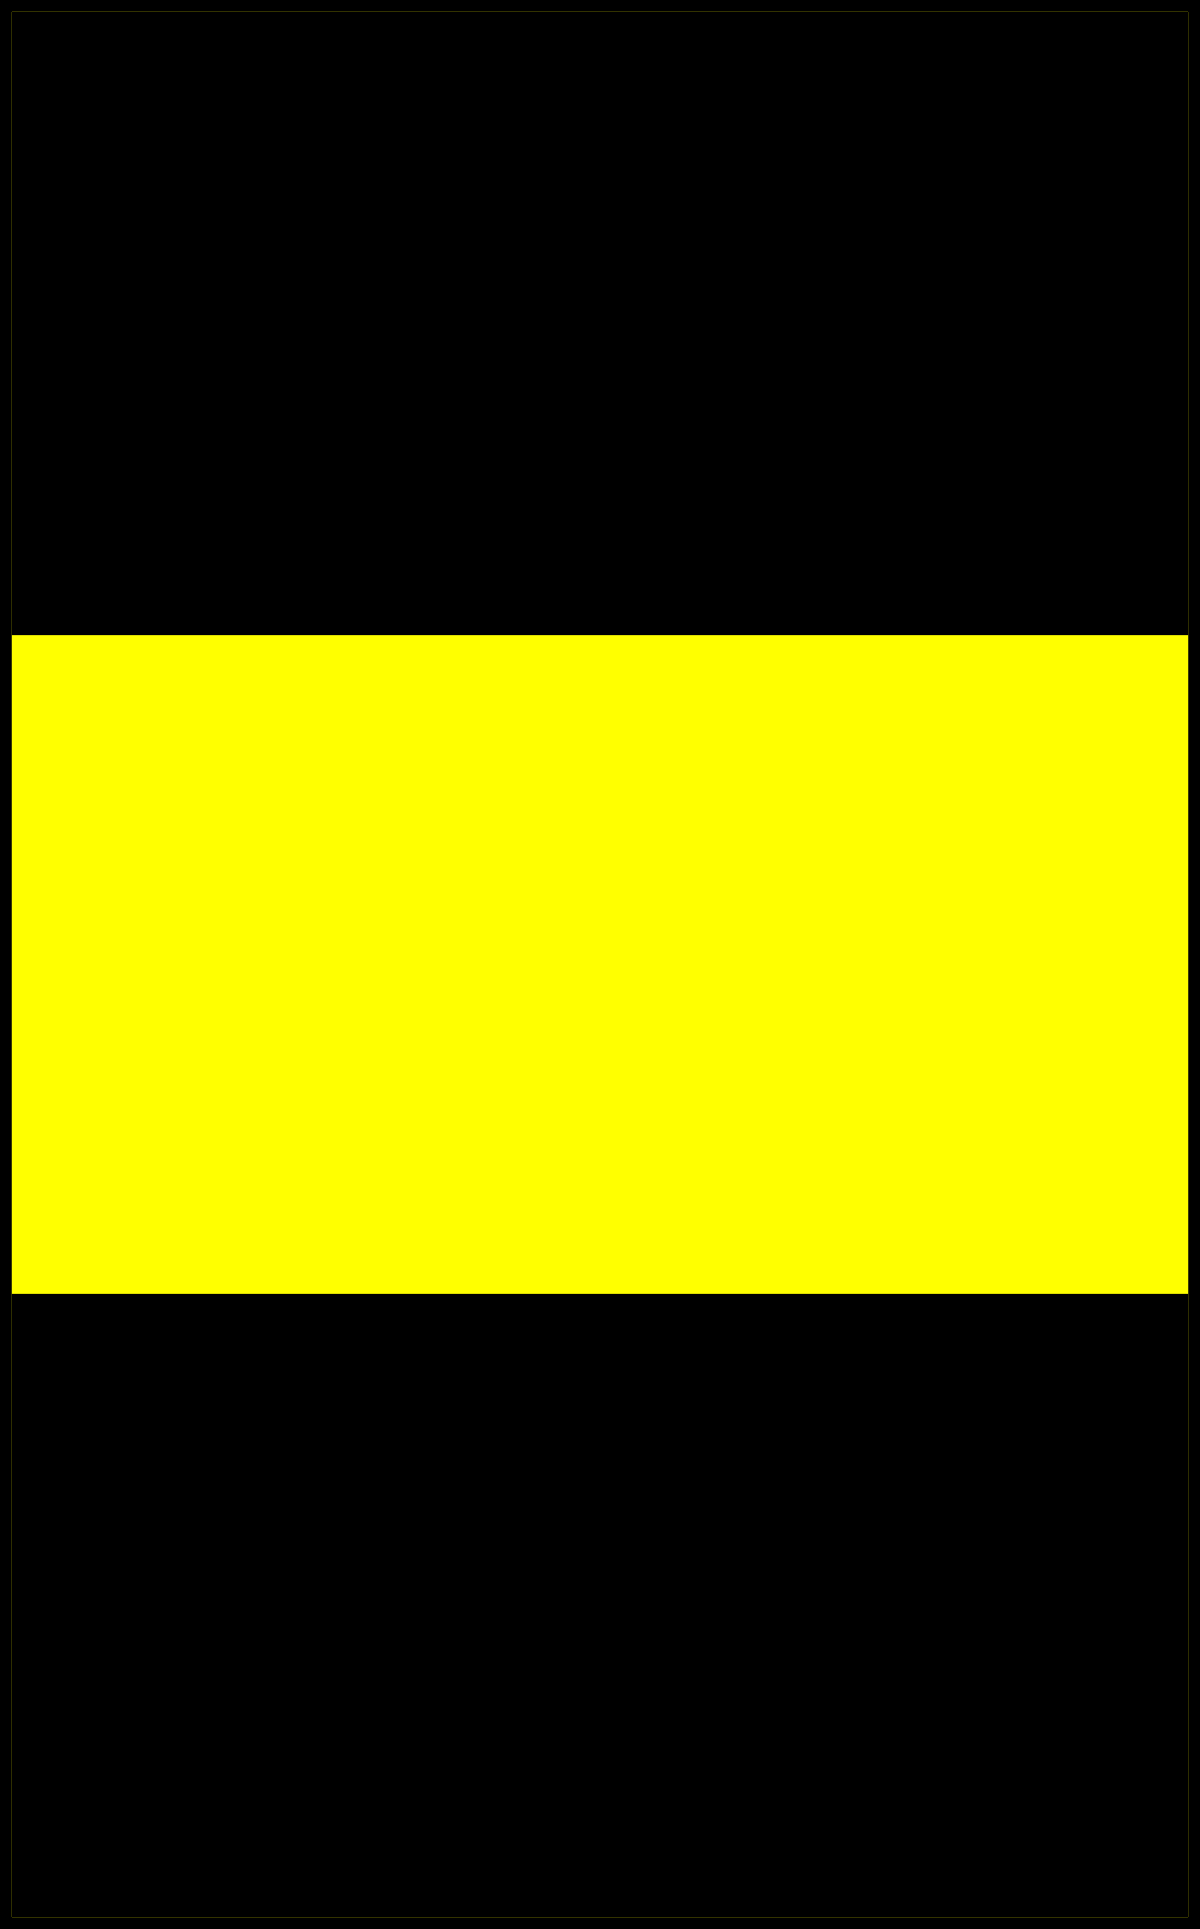 1200x1929 - Yellow and Black 1